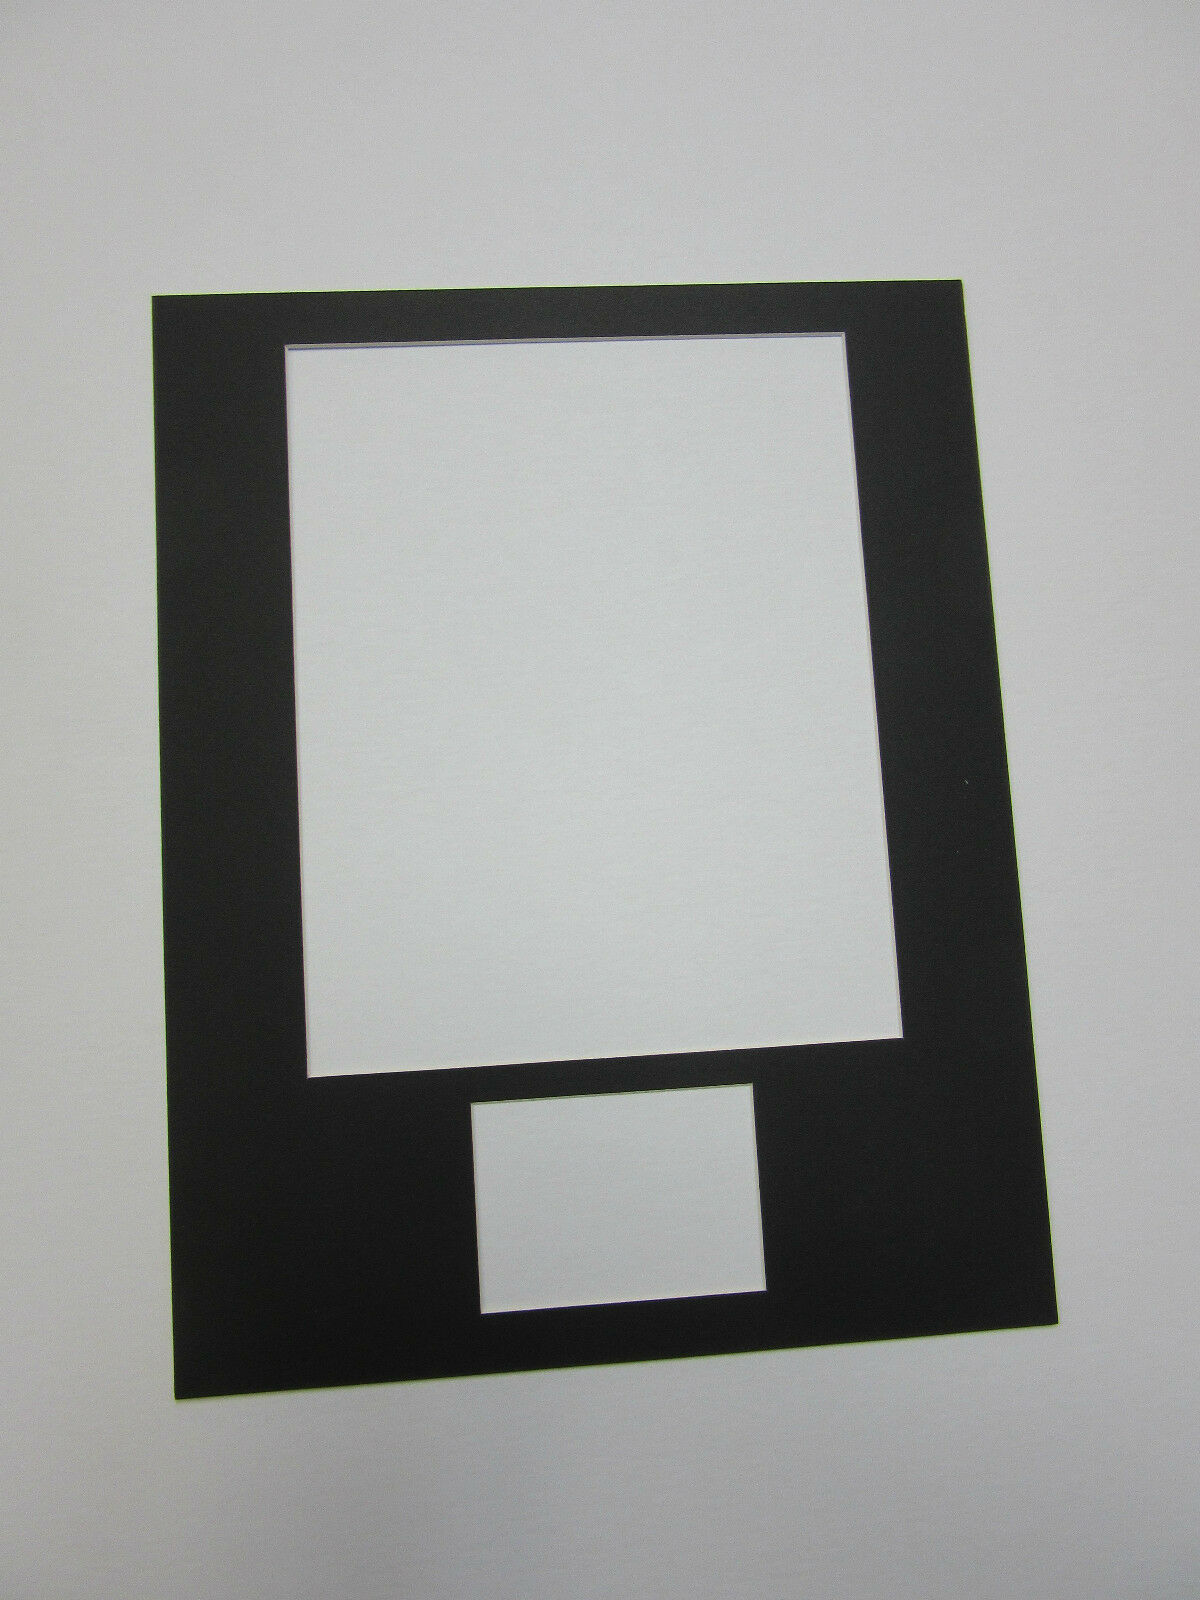 PICTURE FRAME MAT 11x14 for 8x10 photo and 3.5x2.5 autograph opening ...